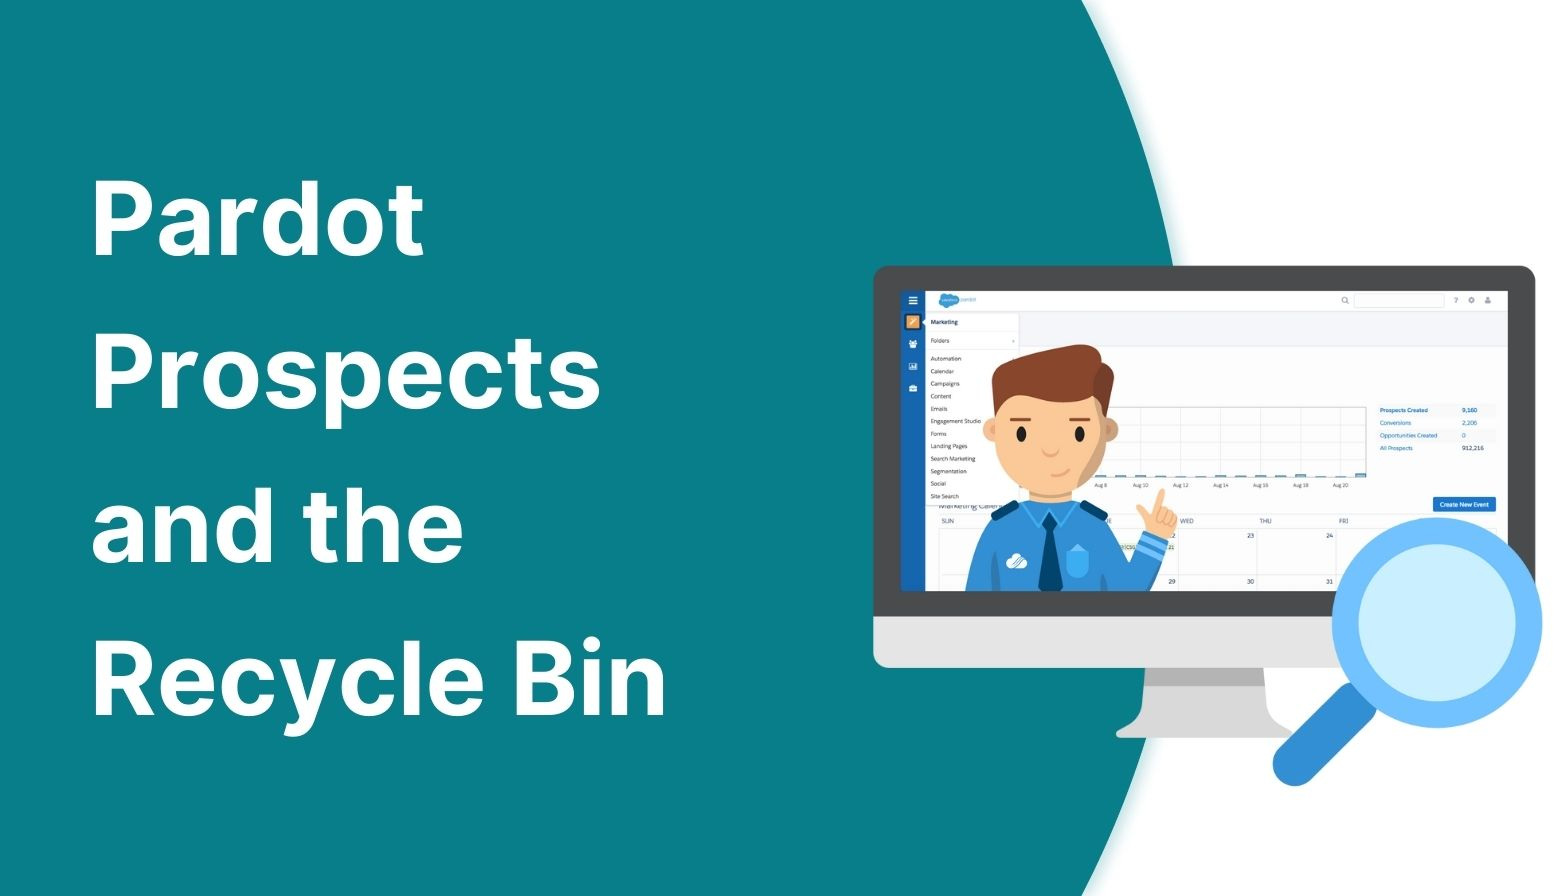 Feature image: Pardot prospects and the recycle bin